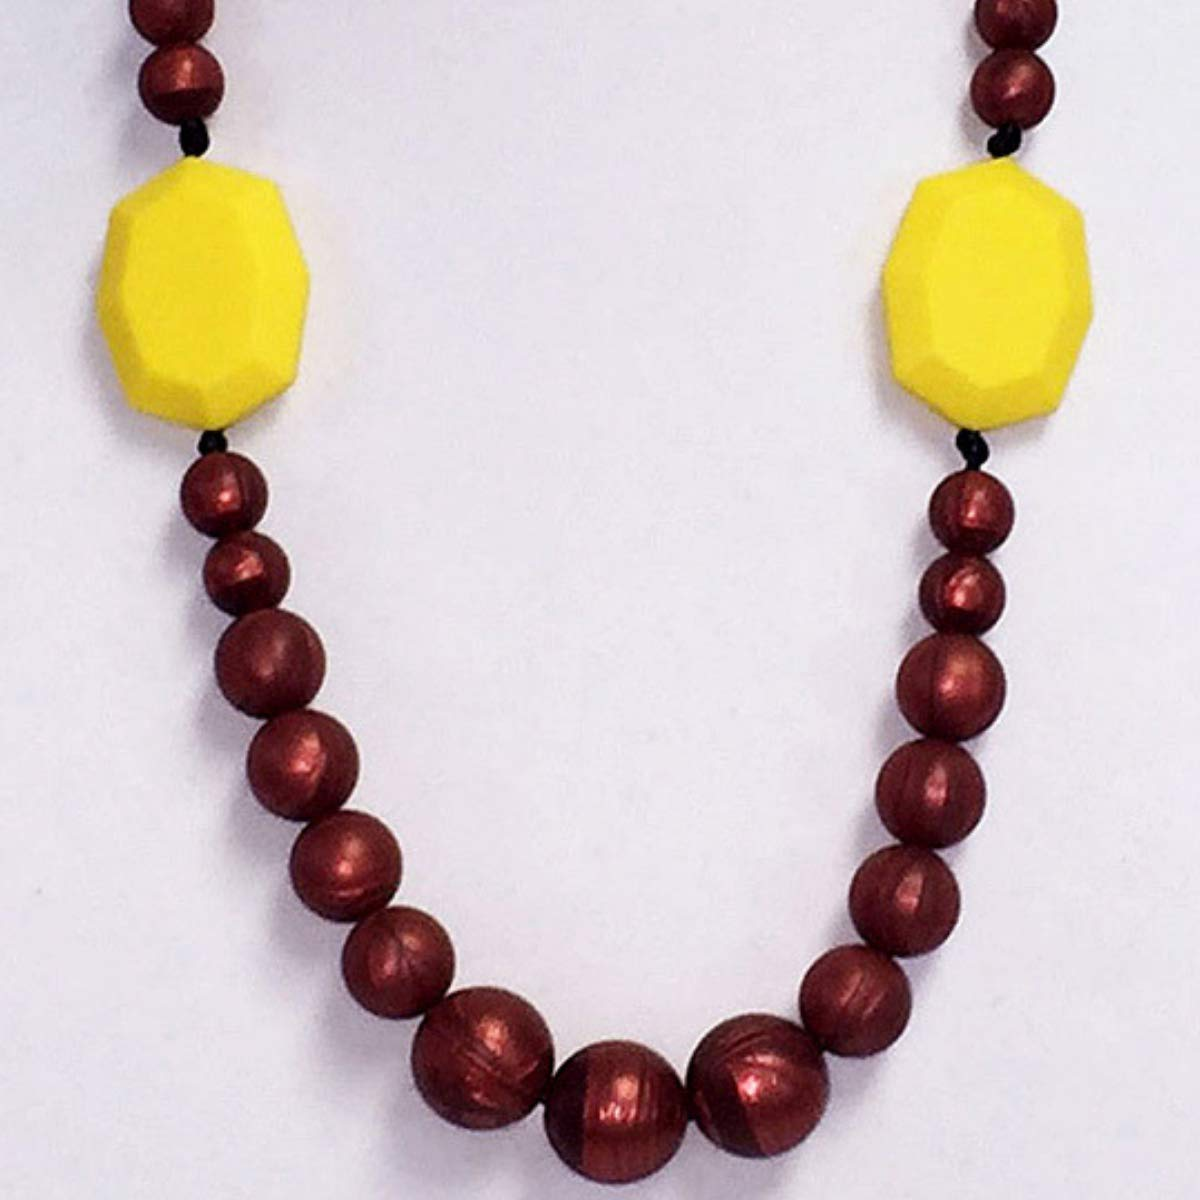 Gumeez Teething Necklace Marisol - Yellow /& Dark Red Pearl Faceted Rectangle and Round Beads